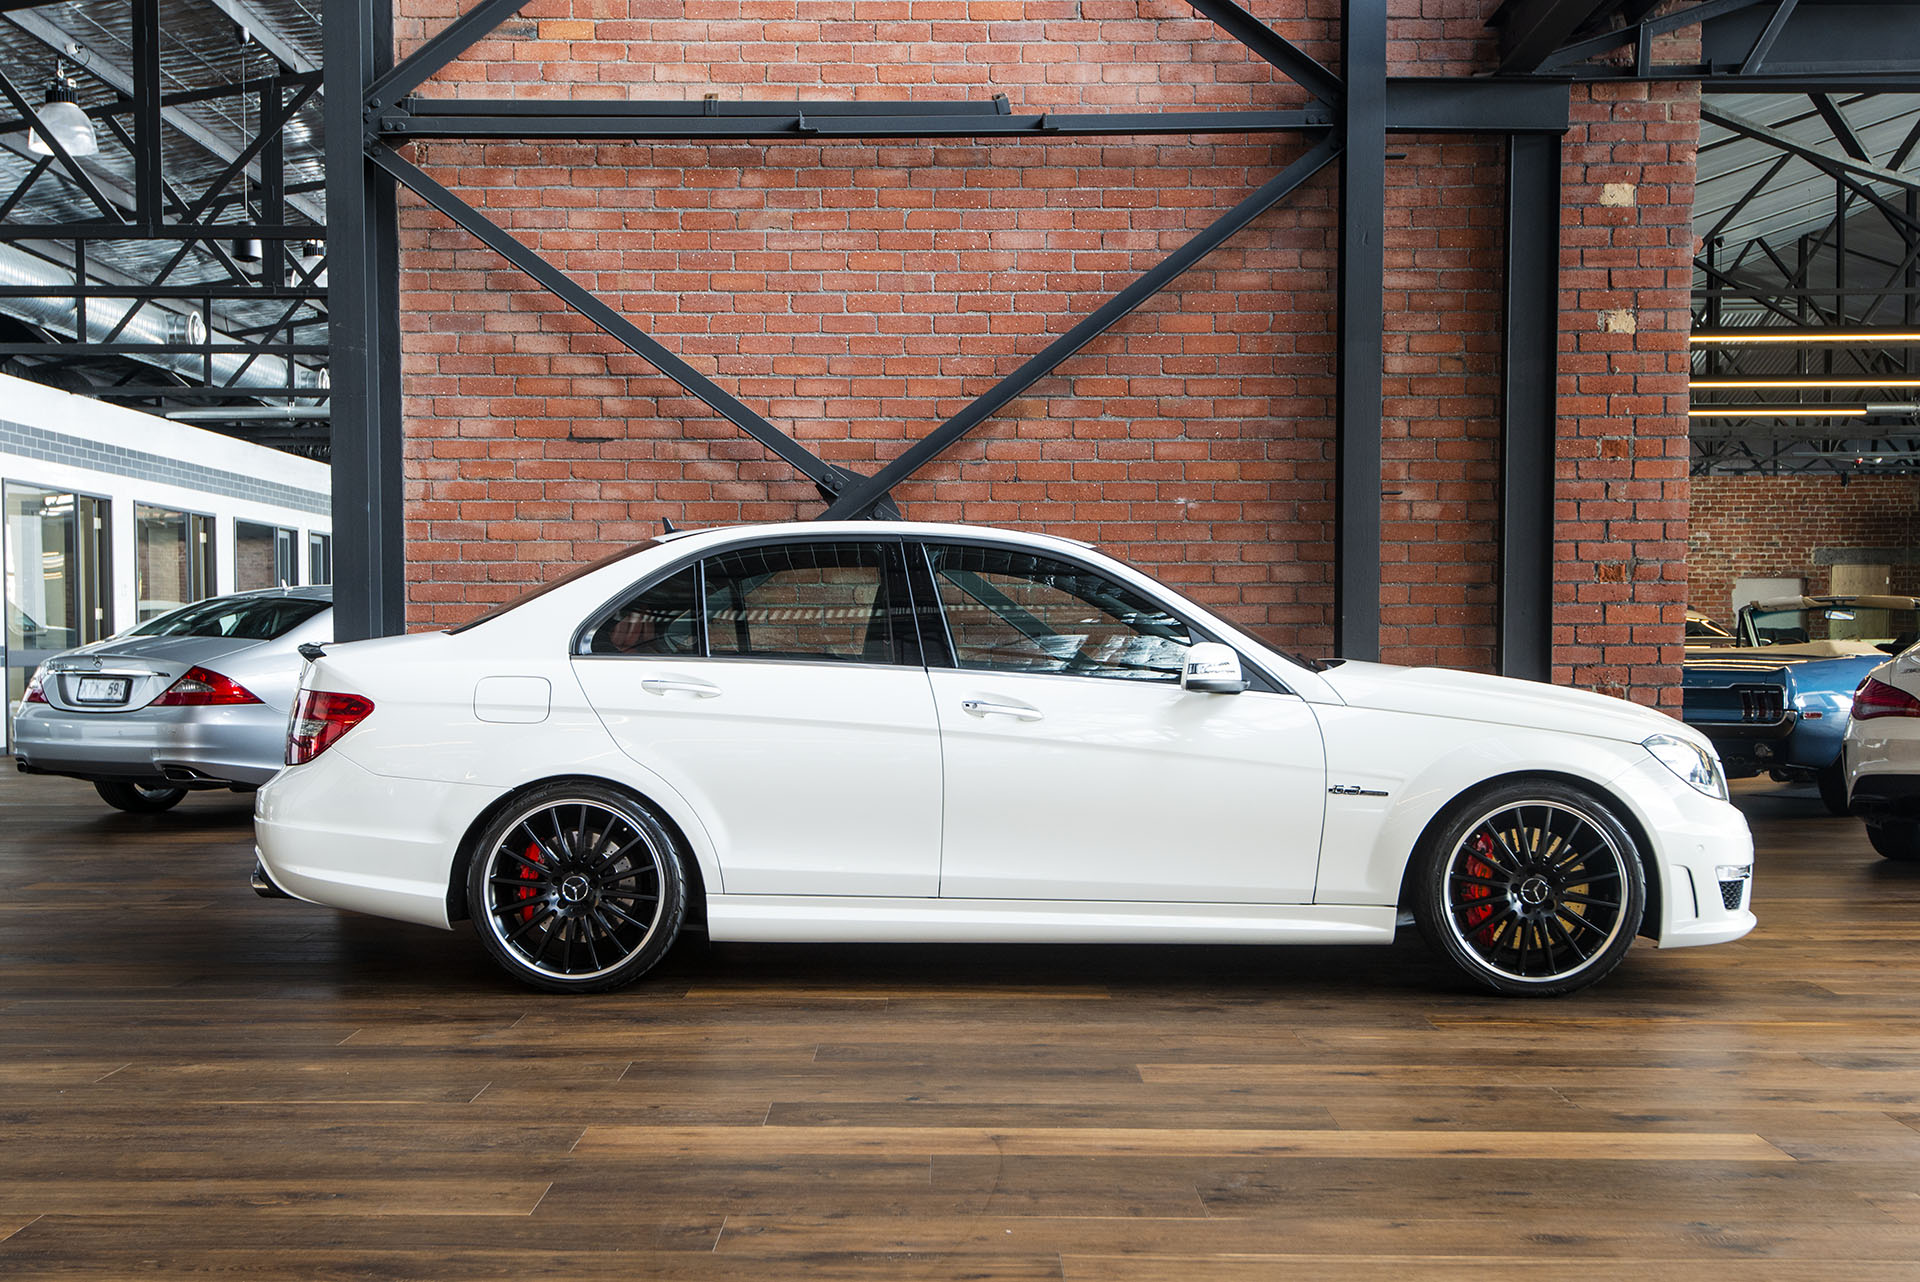 2012 C63 Amg For Sale >> 2012 Mercedes Benz C63 AMG - Richmonds - Classic and Prestige Cars - Storage and Sales ...